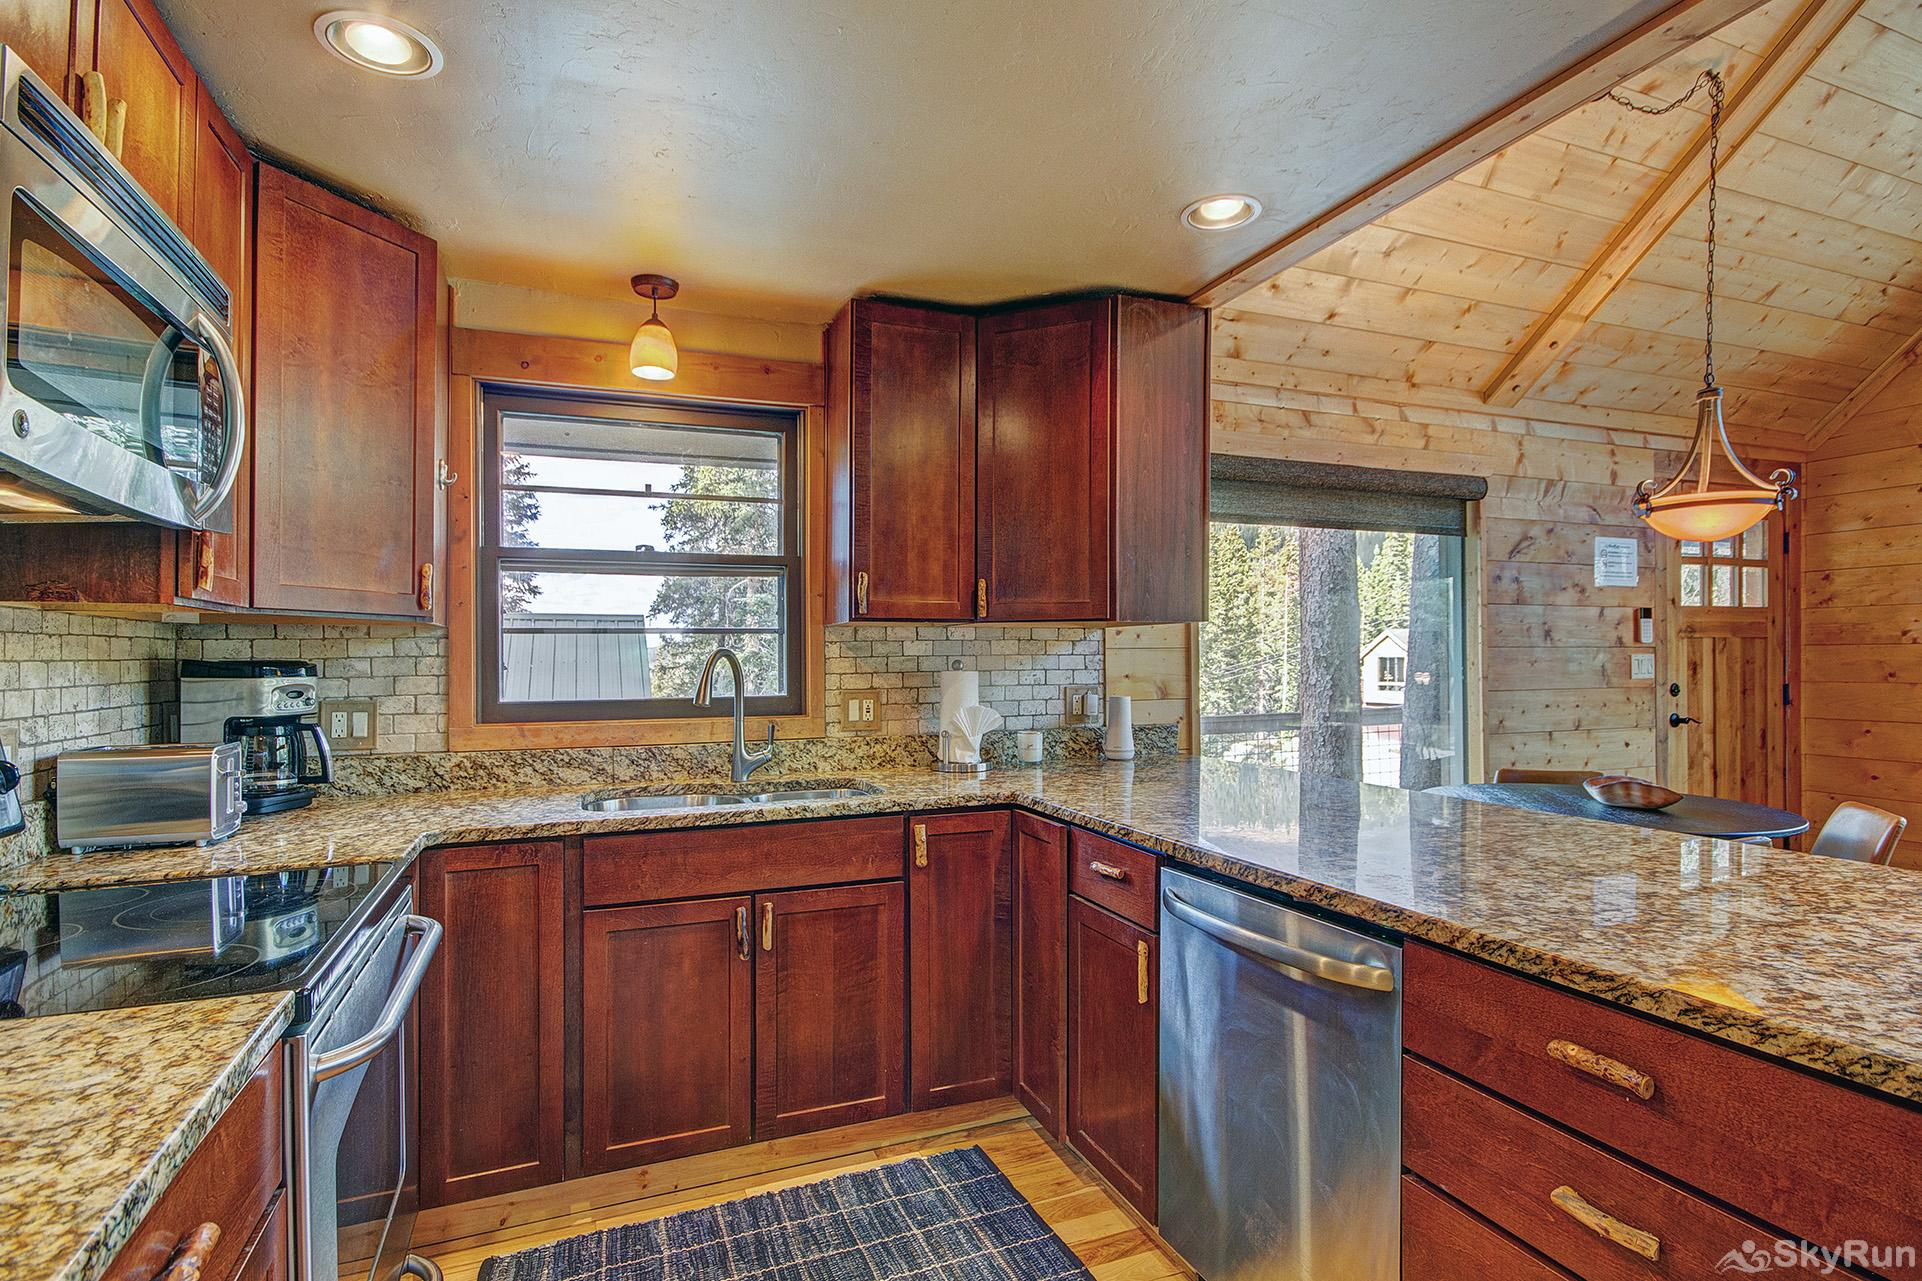 Black Bear Chalet Fully equipped kitchen updated with stainless steel appliances